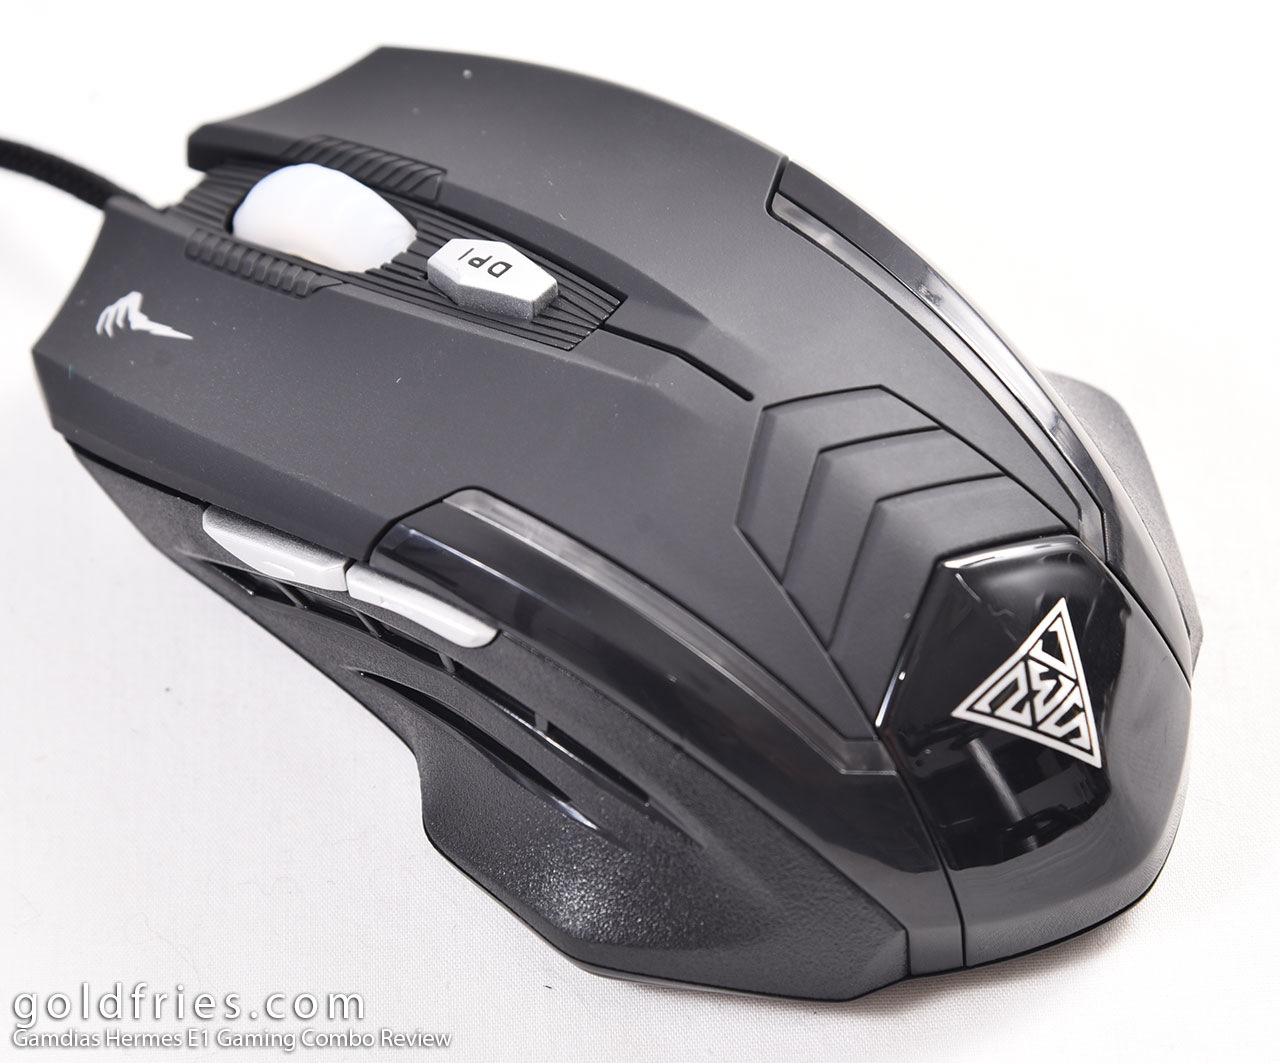 Gamdias Hermes E1 Gaming Combo Review